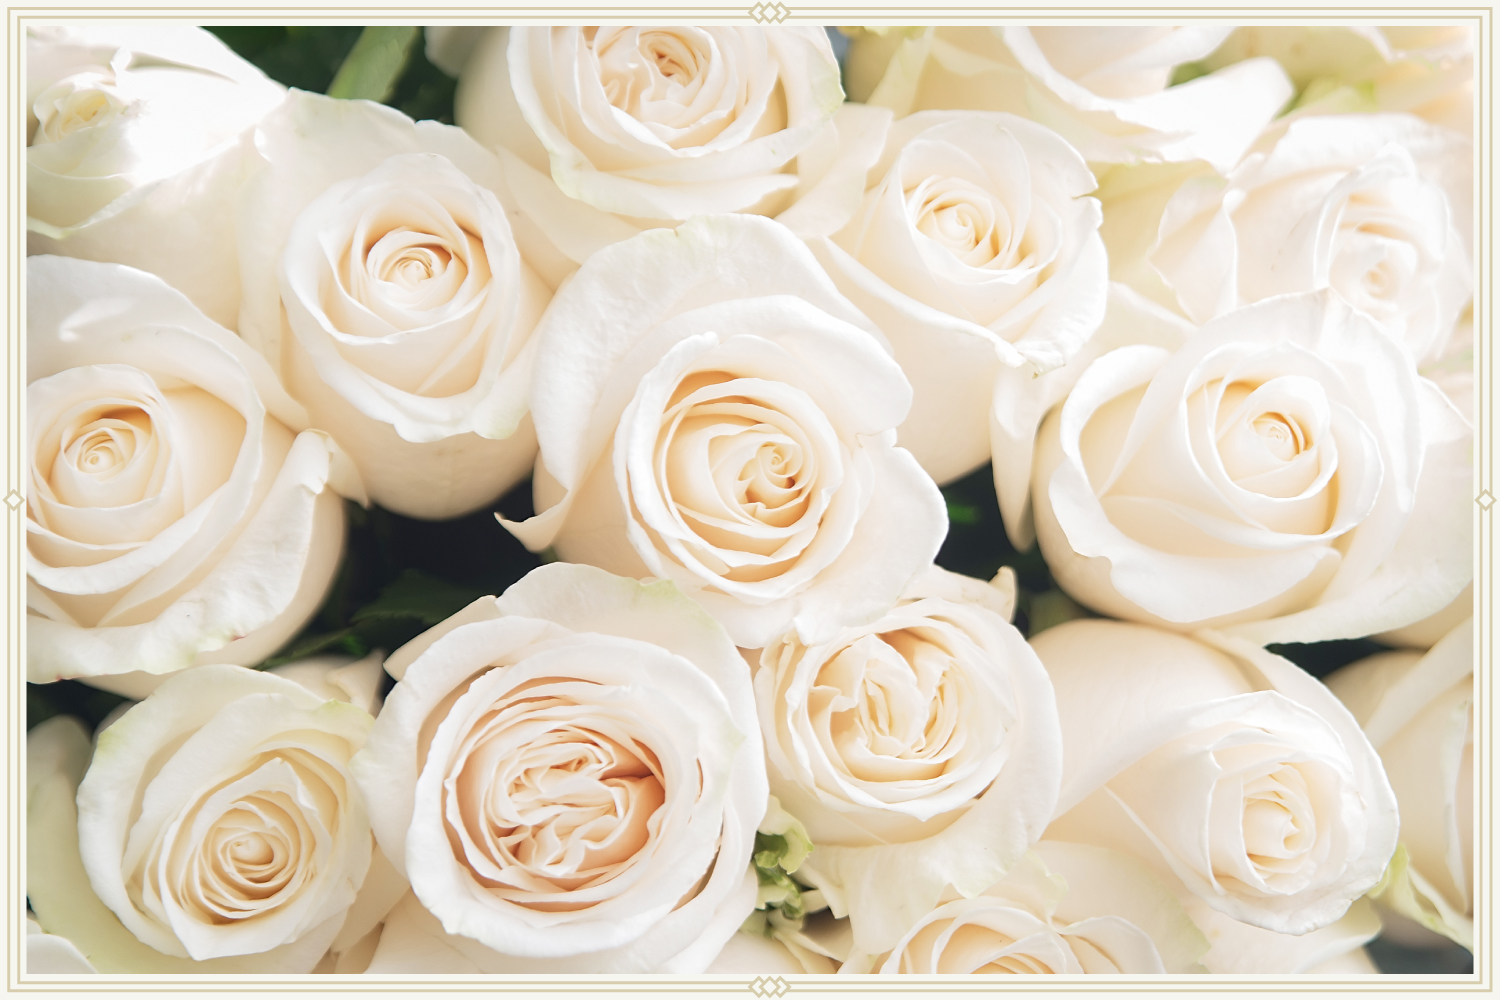 close-up shot of white roses